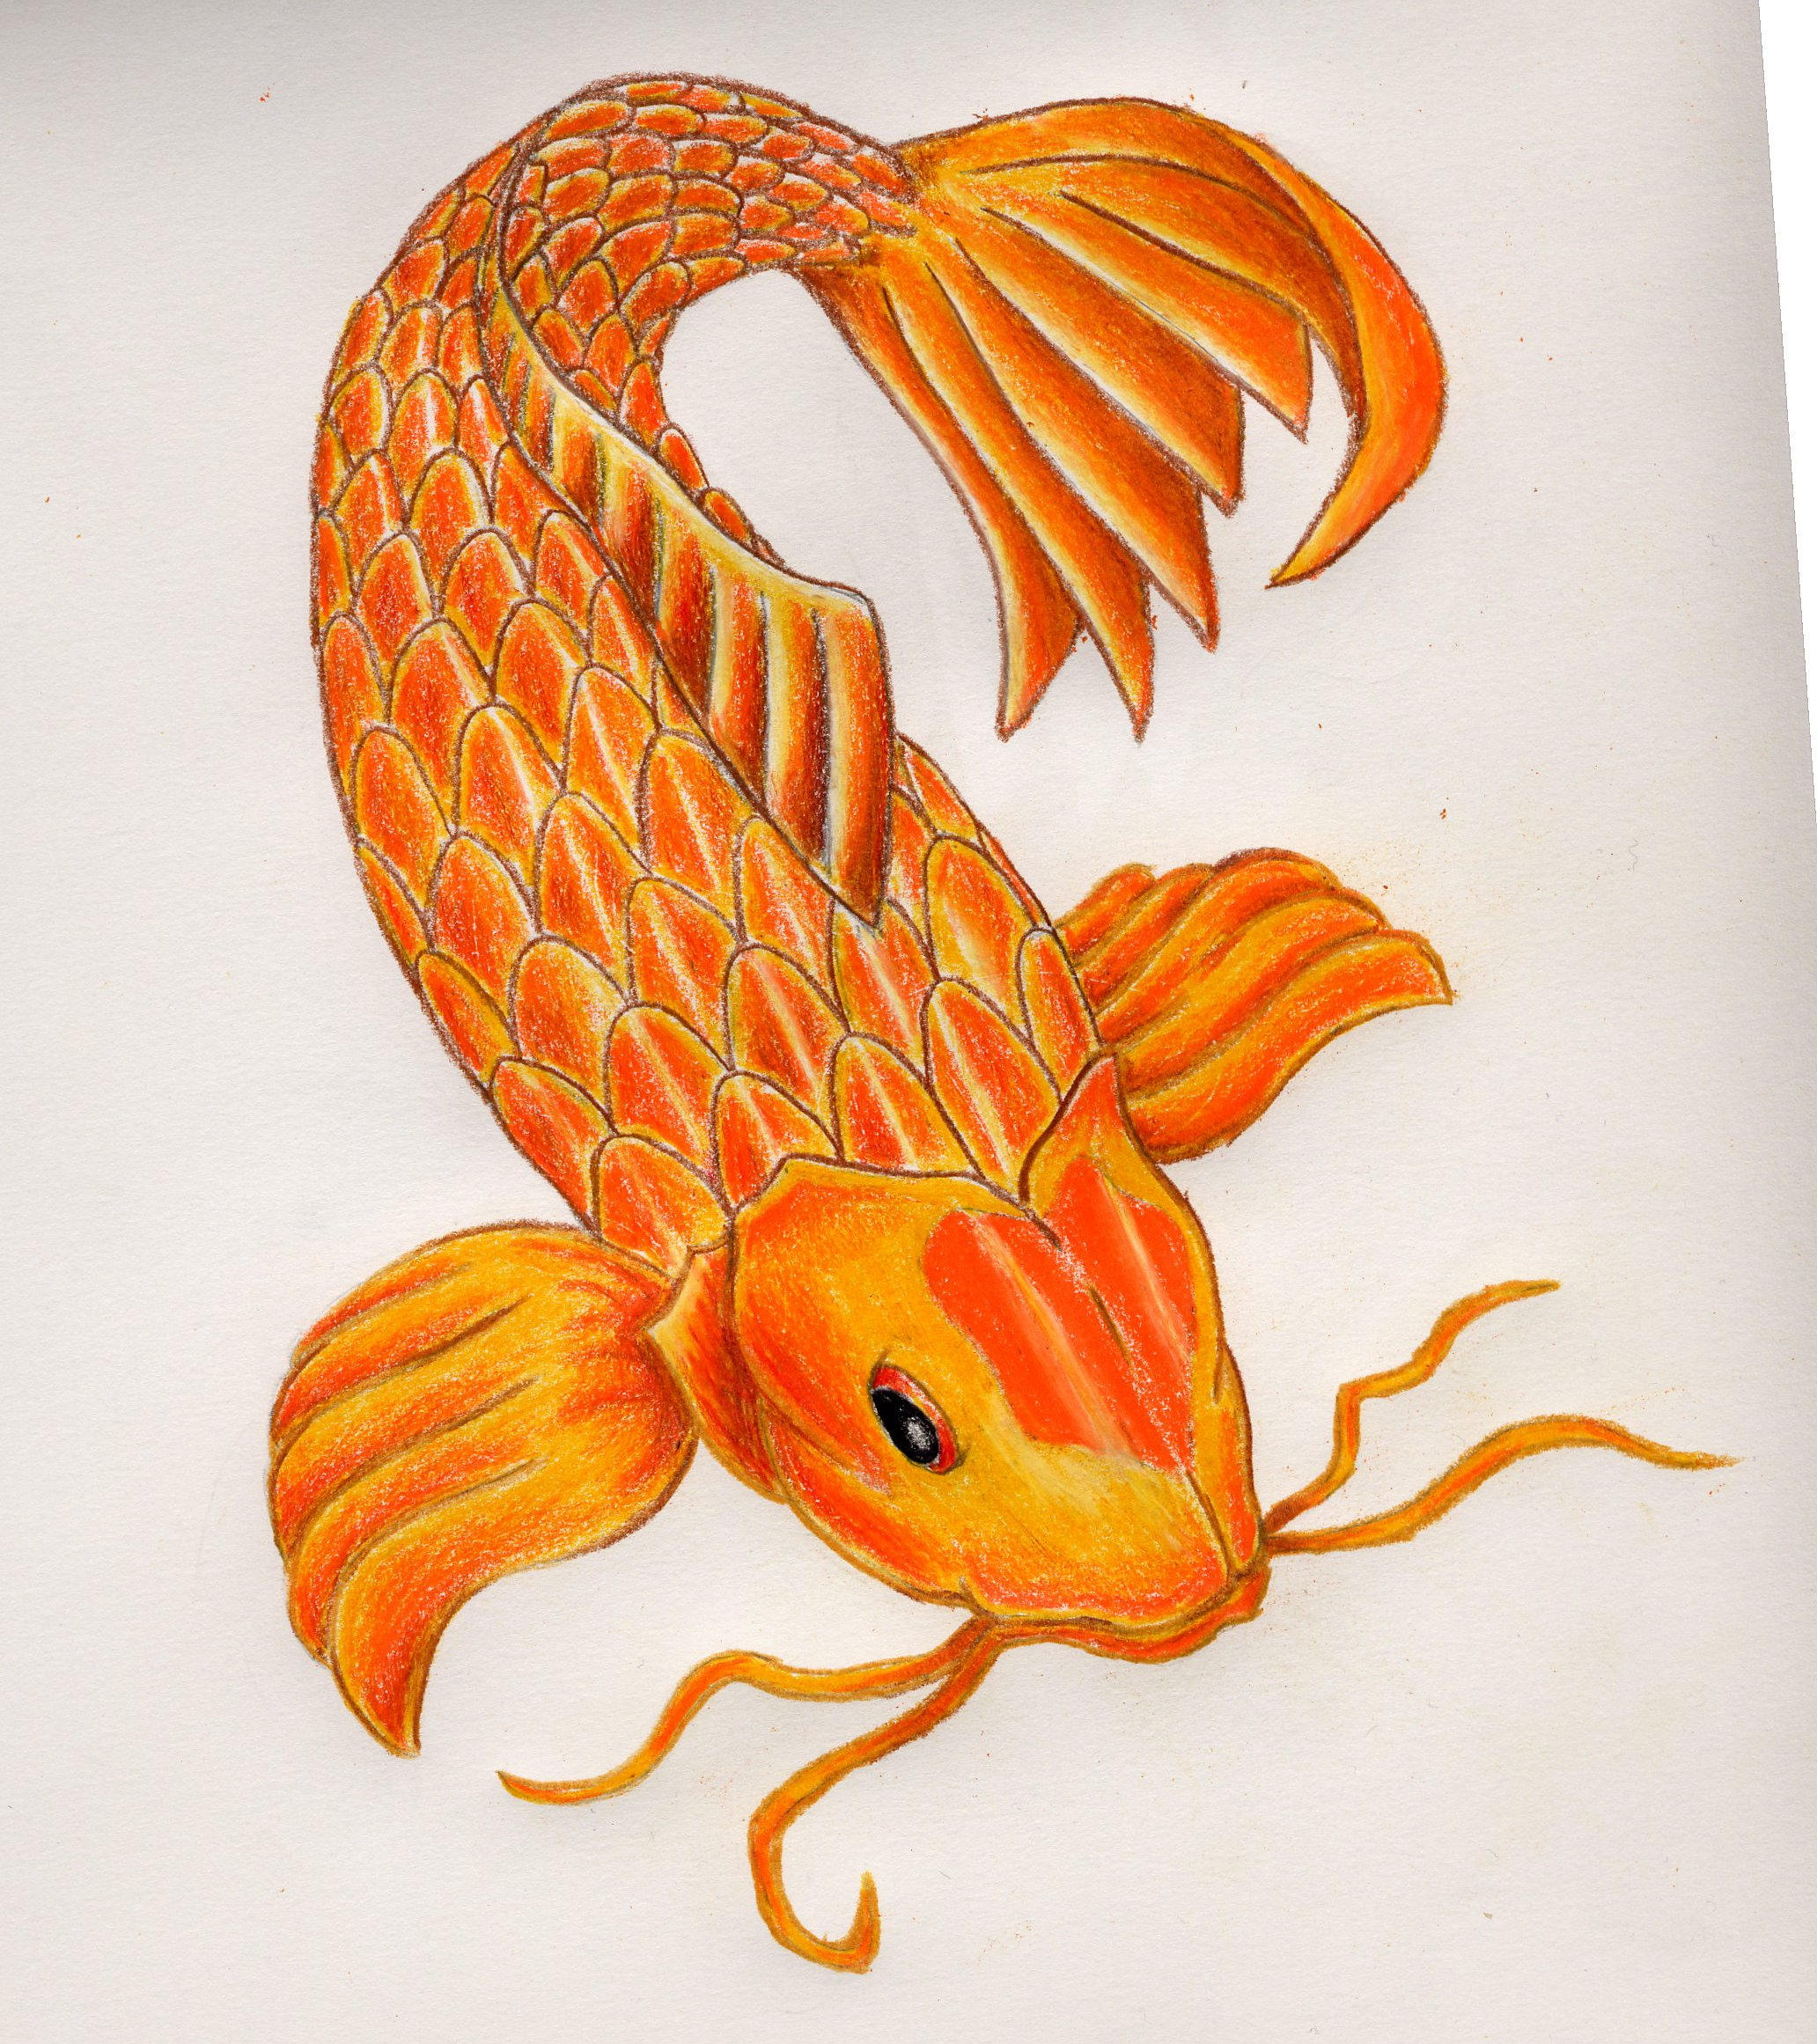 Koi fish 1 by soletthemstare on deviantart for Koi fish size